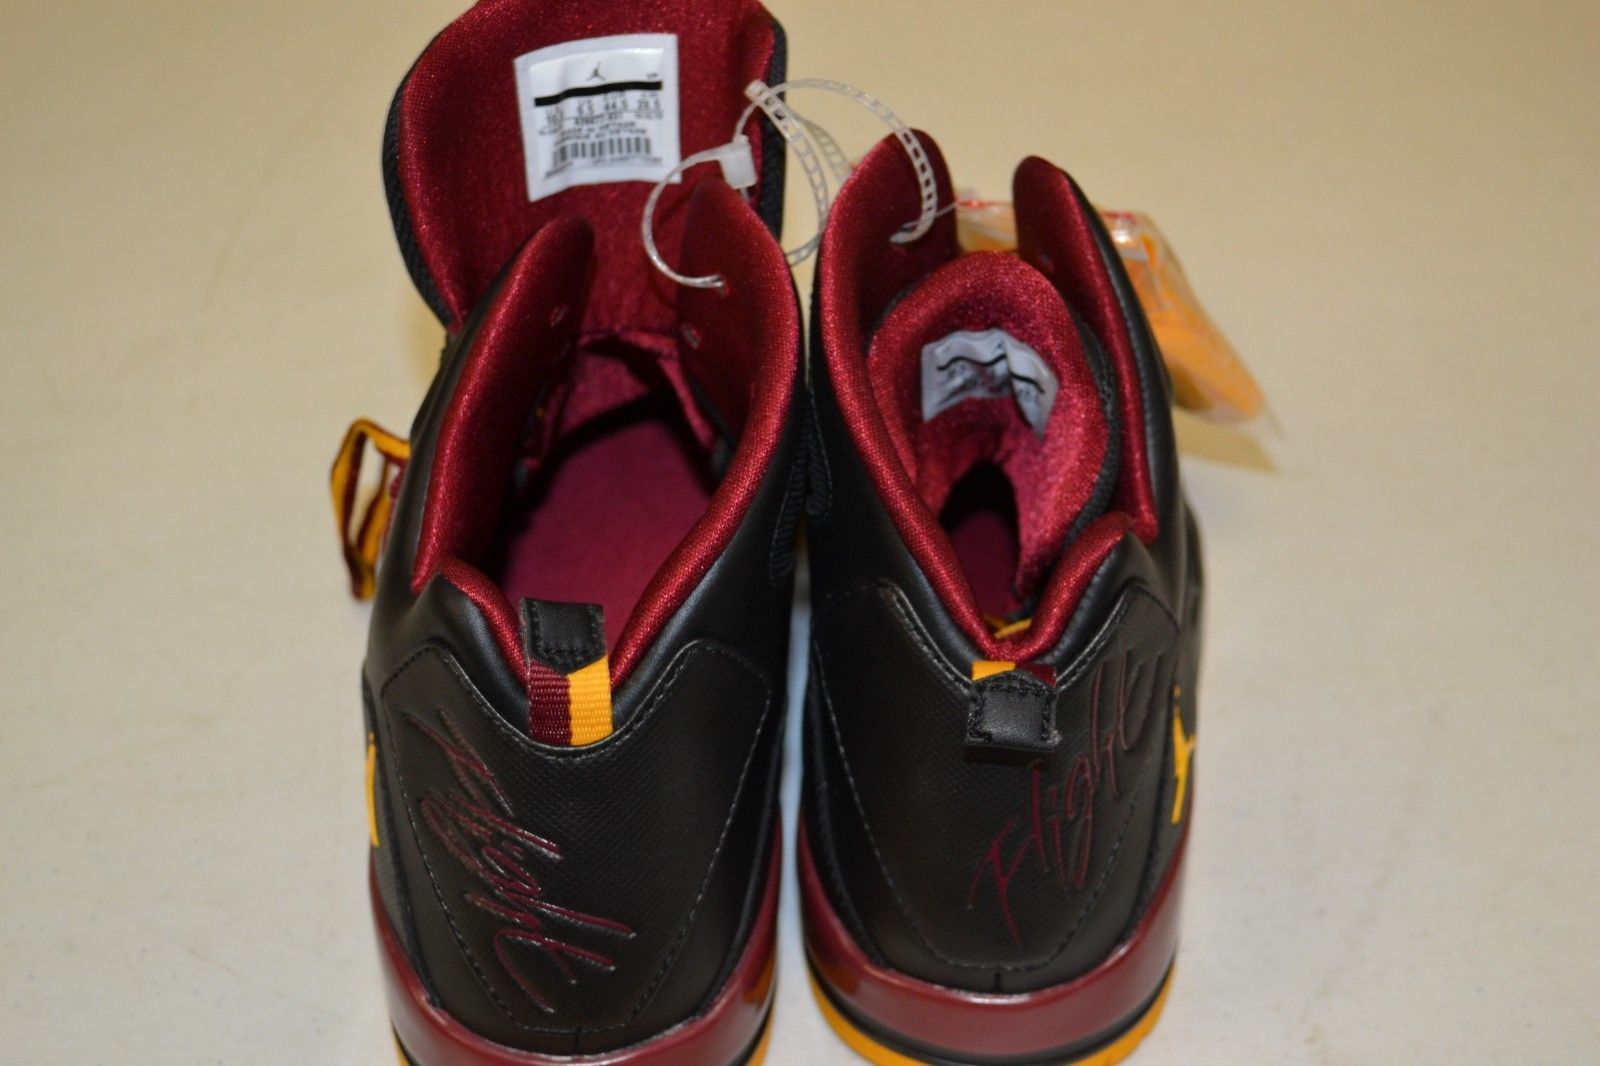 premium selection 0e2bf 0ab8e Nike Air Jordan Flight SC-3 Size Mens sz 10.5 Shoes 629877-031 Maroon